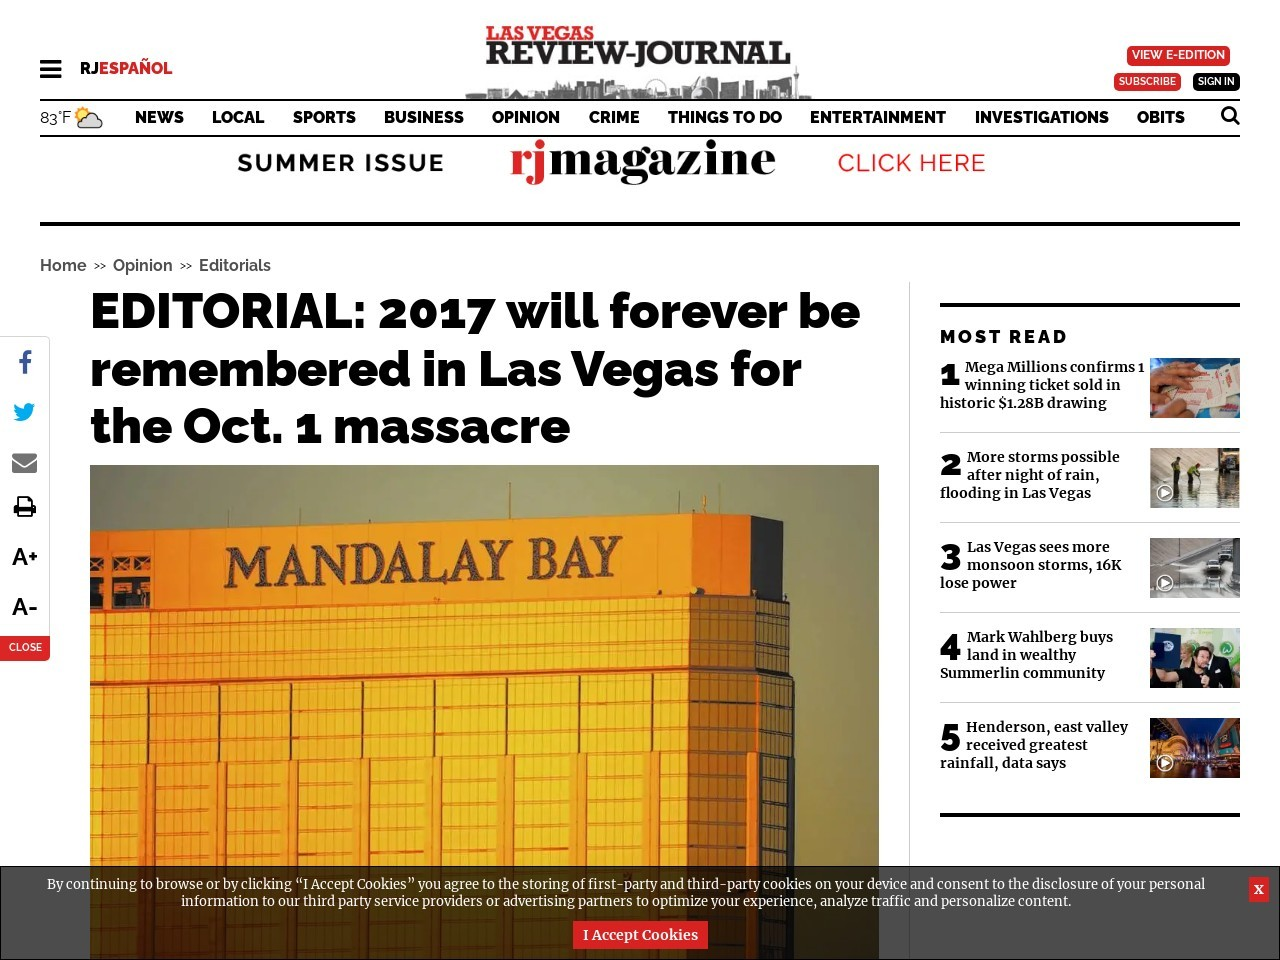 EDITORIAL: 2017 will forever be remembered in Las Vegas for the Oct. 1 massacre